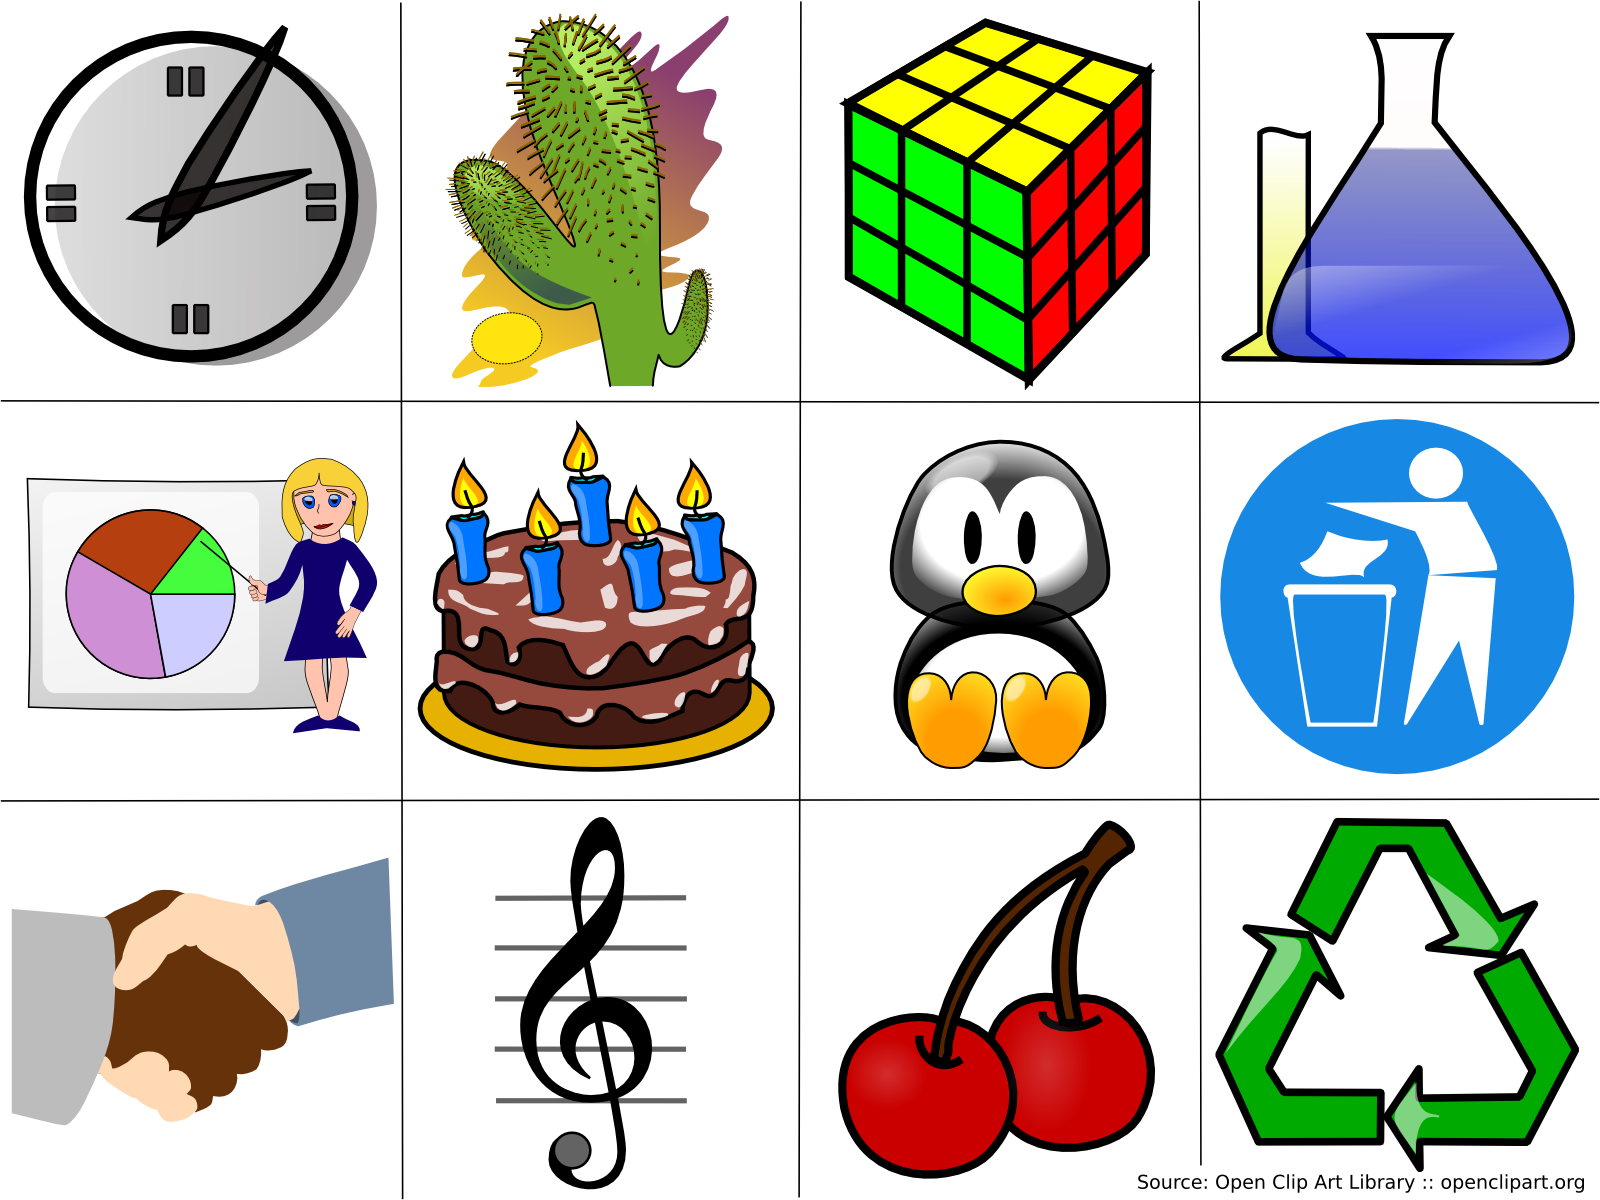 Grant elementary images clip. Website clipart bibliography